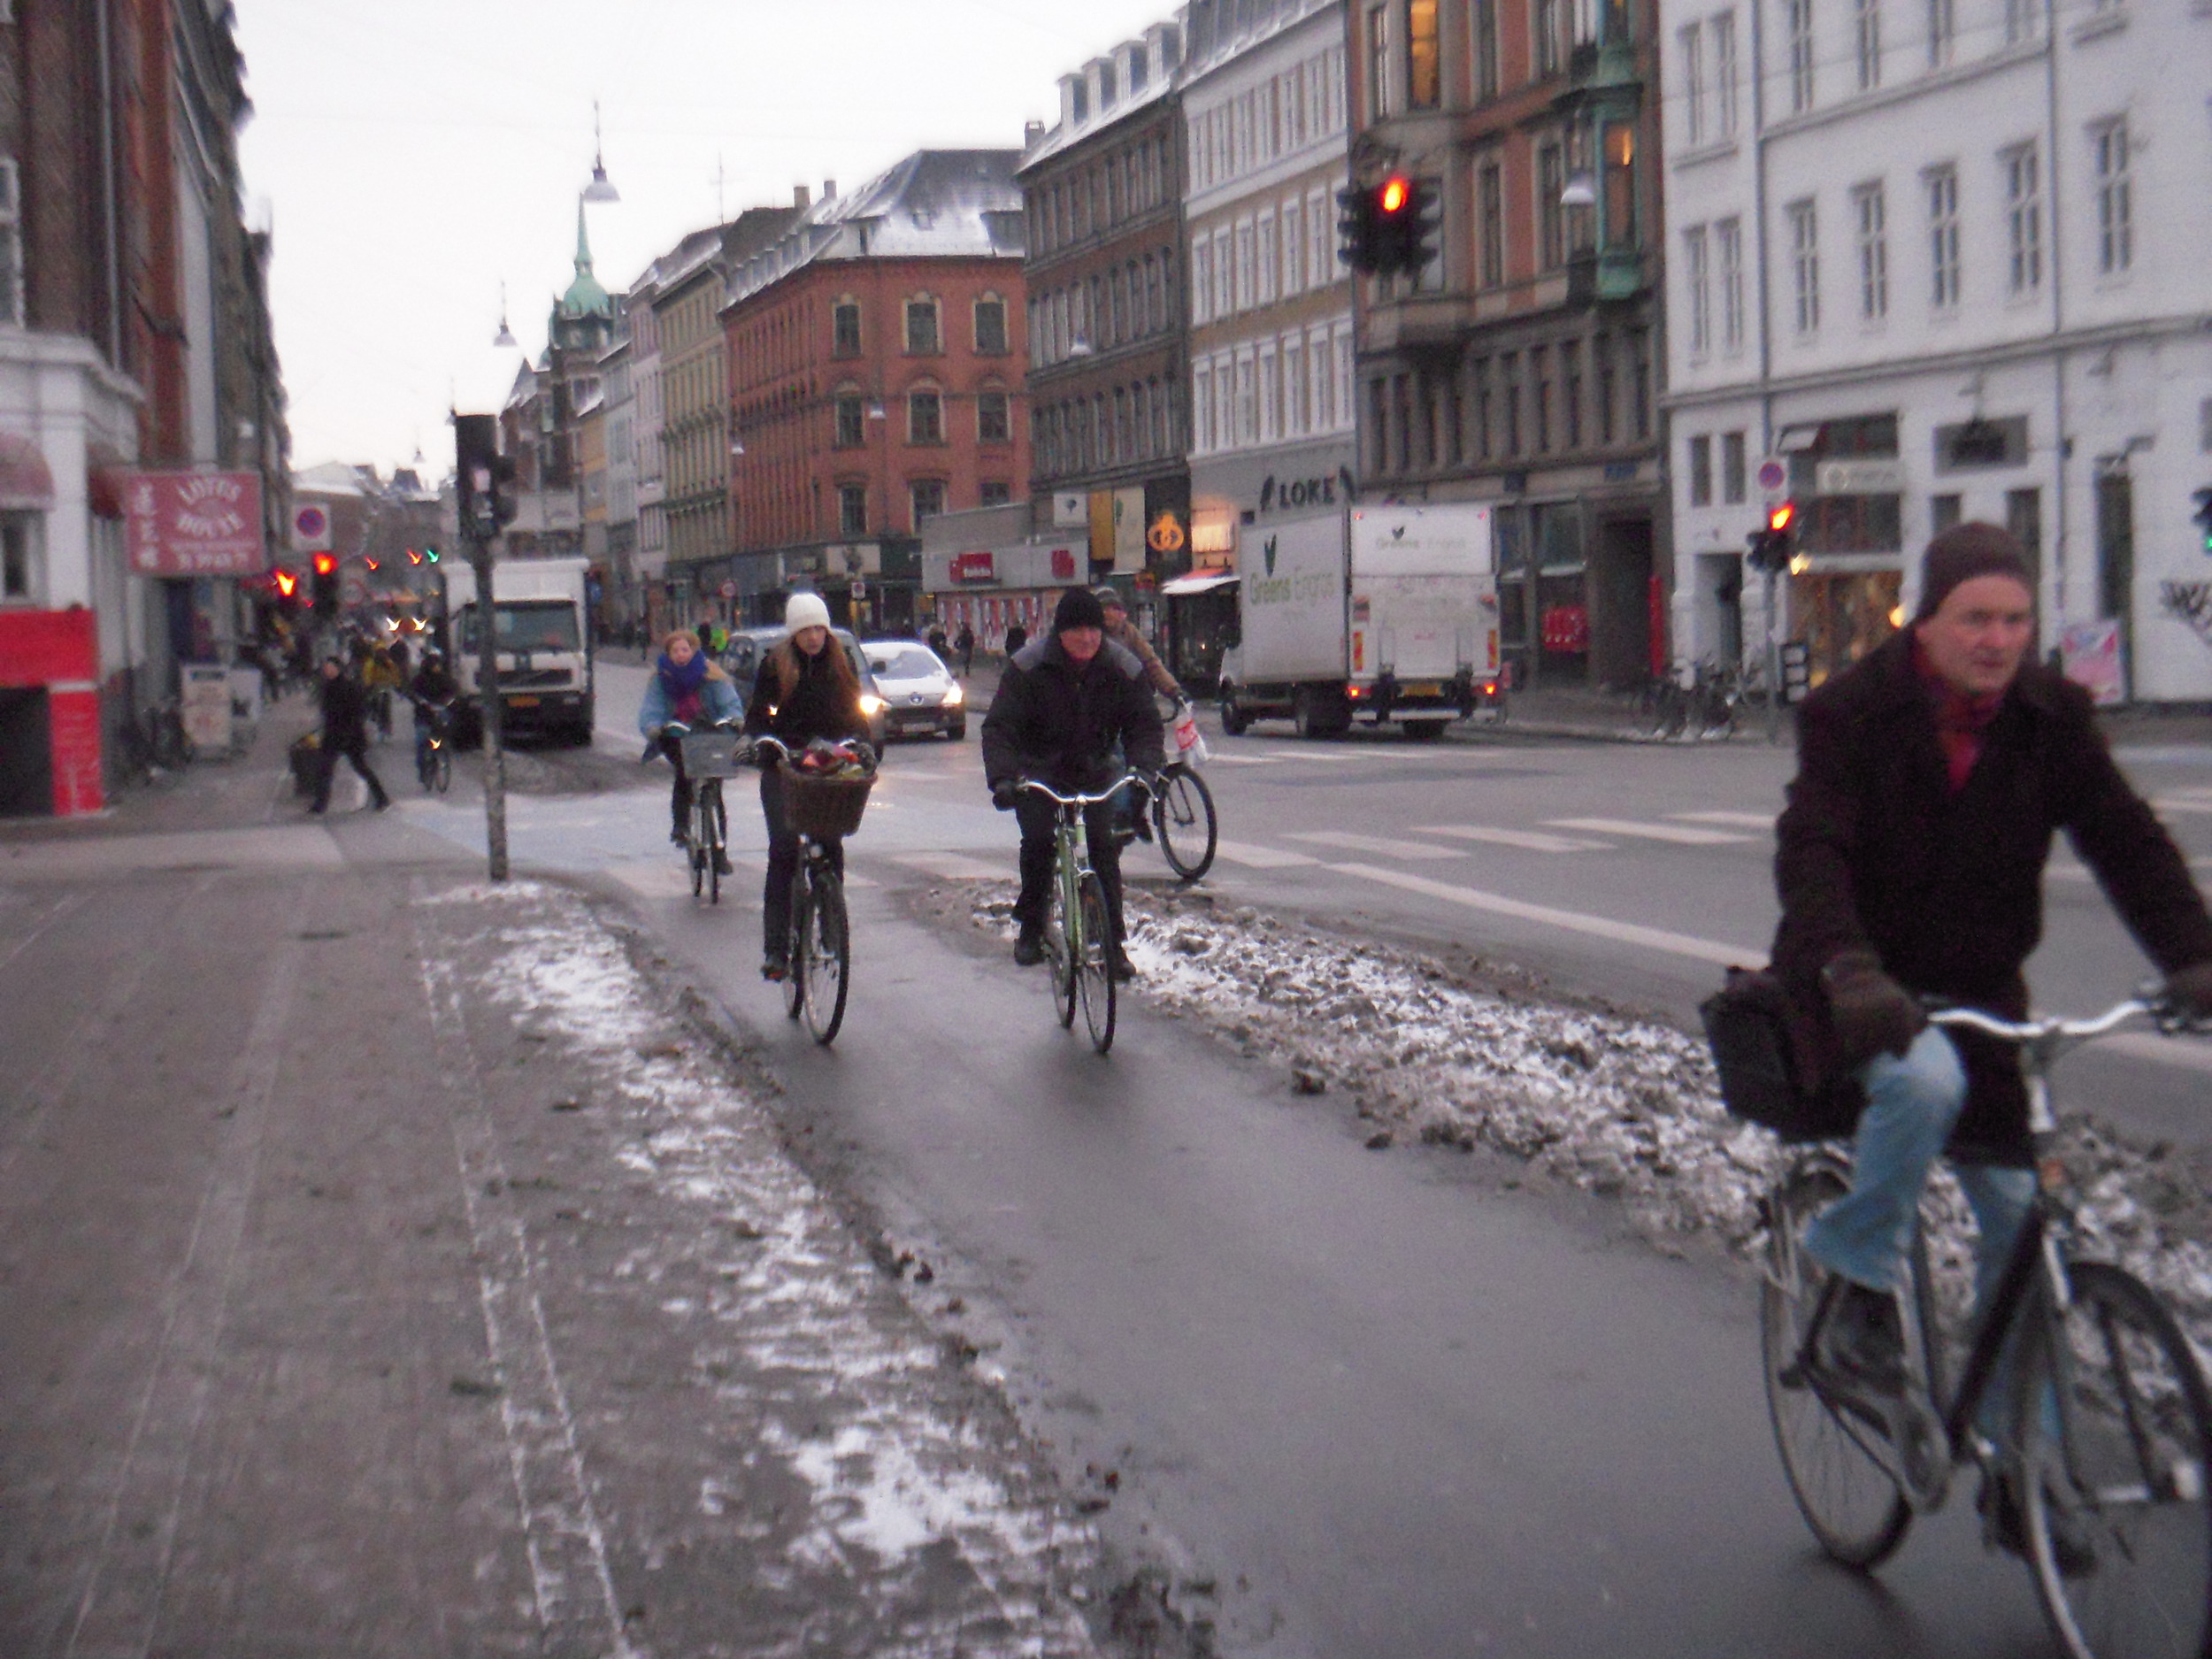 Urban Cycling in the Snow